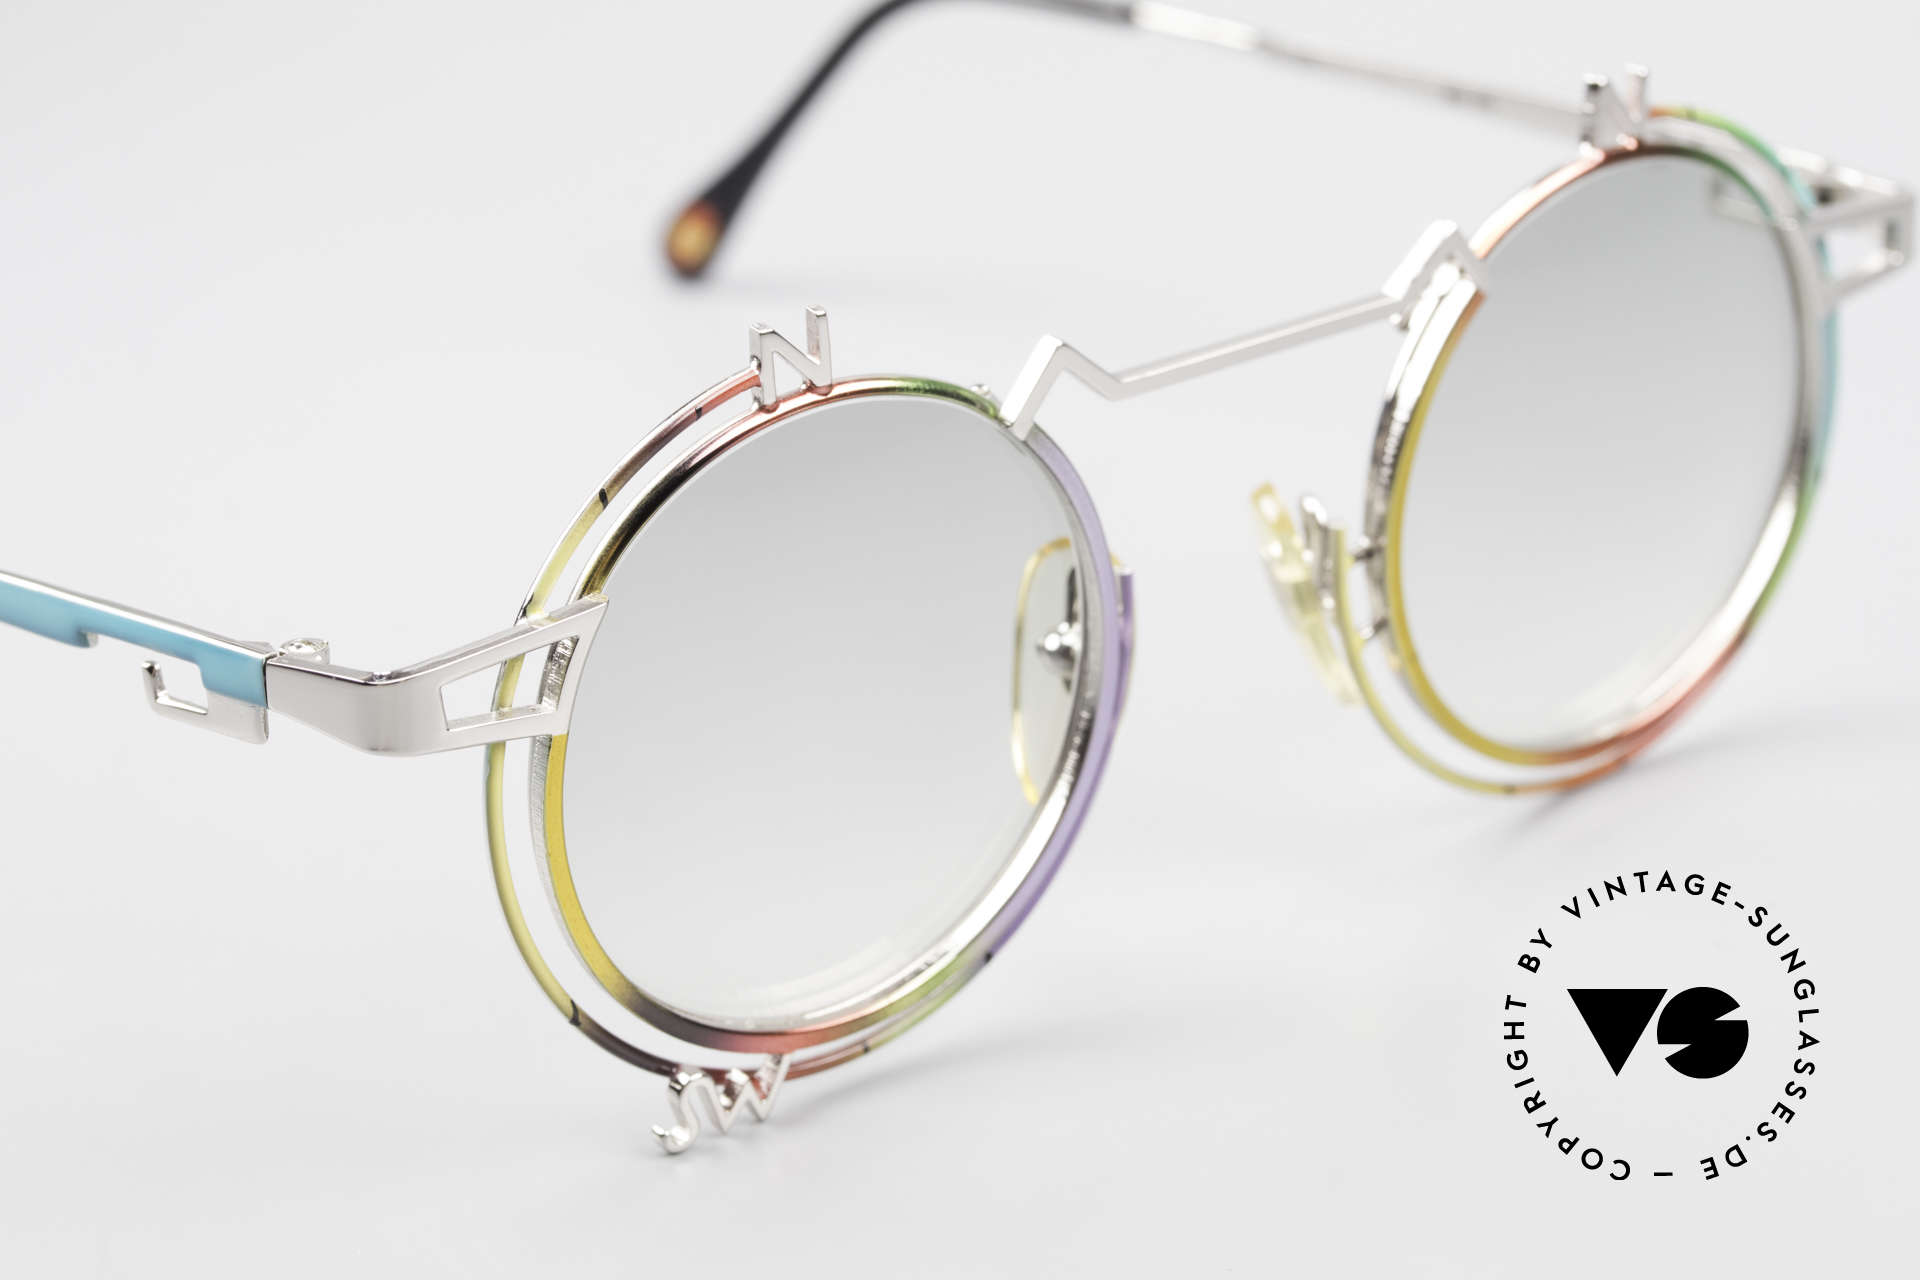 Casanova SC6 Simbolismo Orientation, limited edition 161/1000 - only 1000 models, worldwide, Made for Men and Women